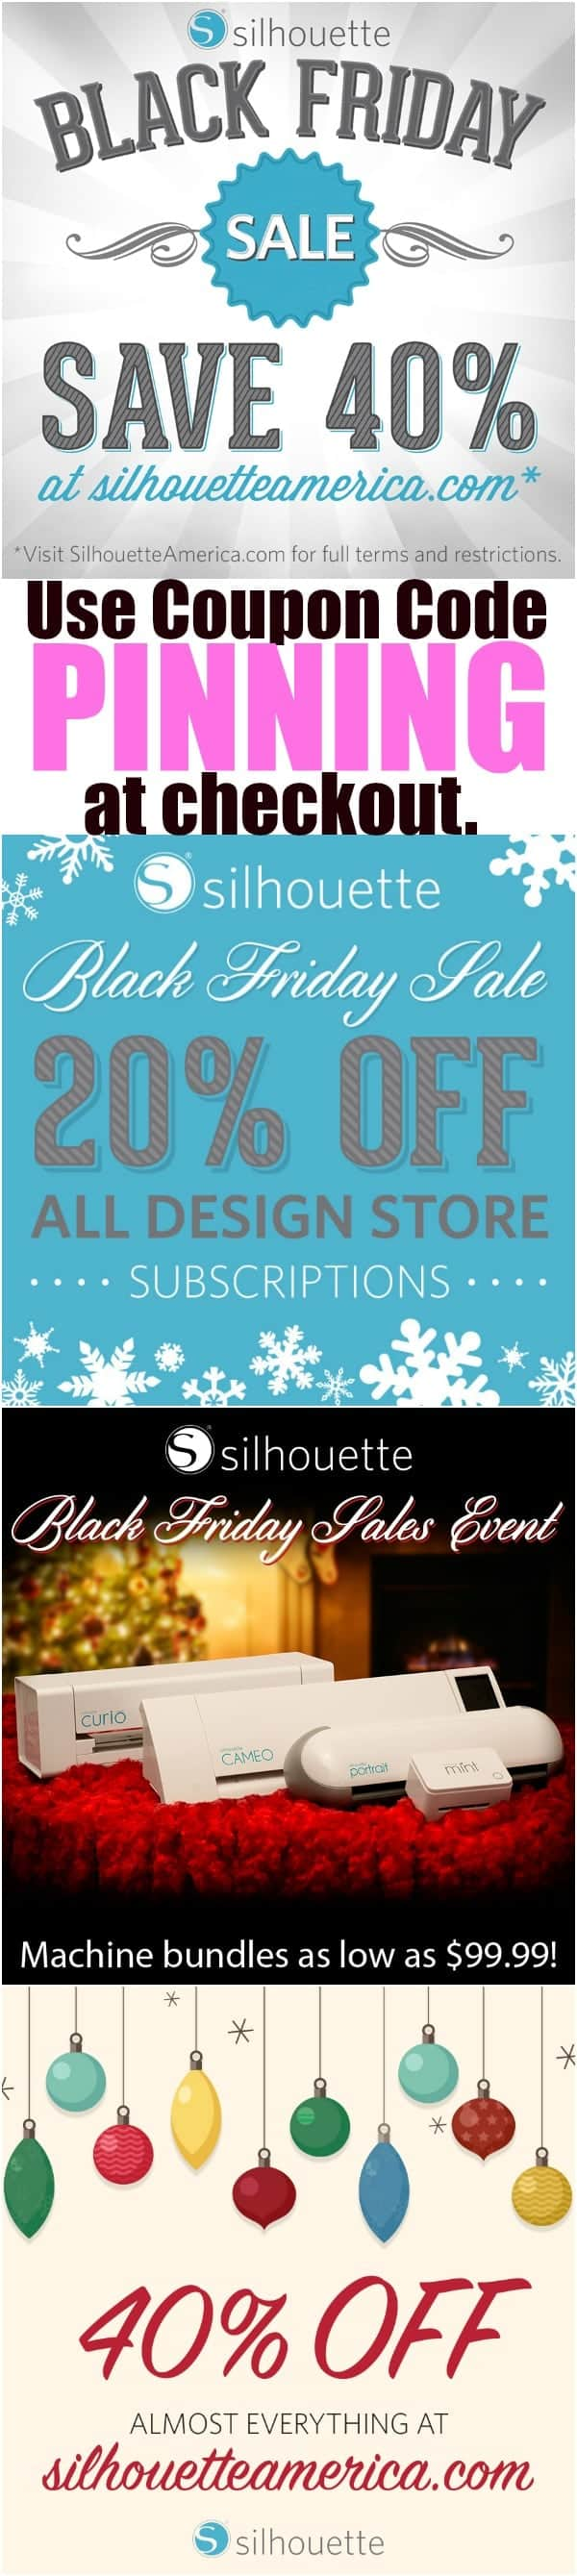 Get the BIGGEST discounts of the year! Silhouette Black Friday Sale 2015-- Use Silhouette Coupon code PINNING at check out. Great details on what you would want to buy!